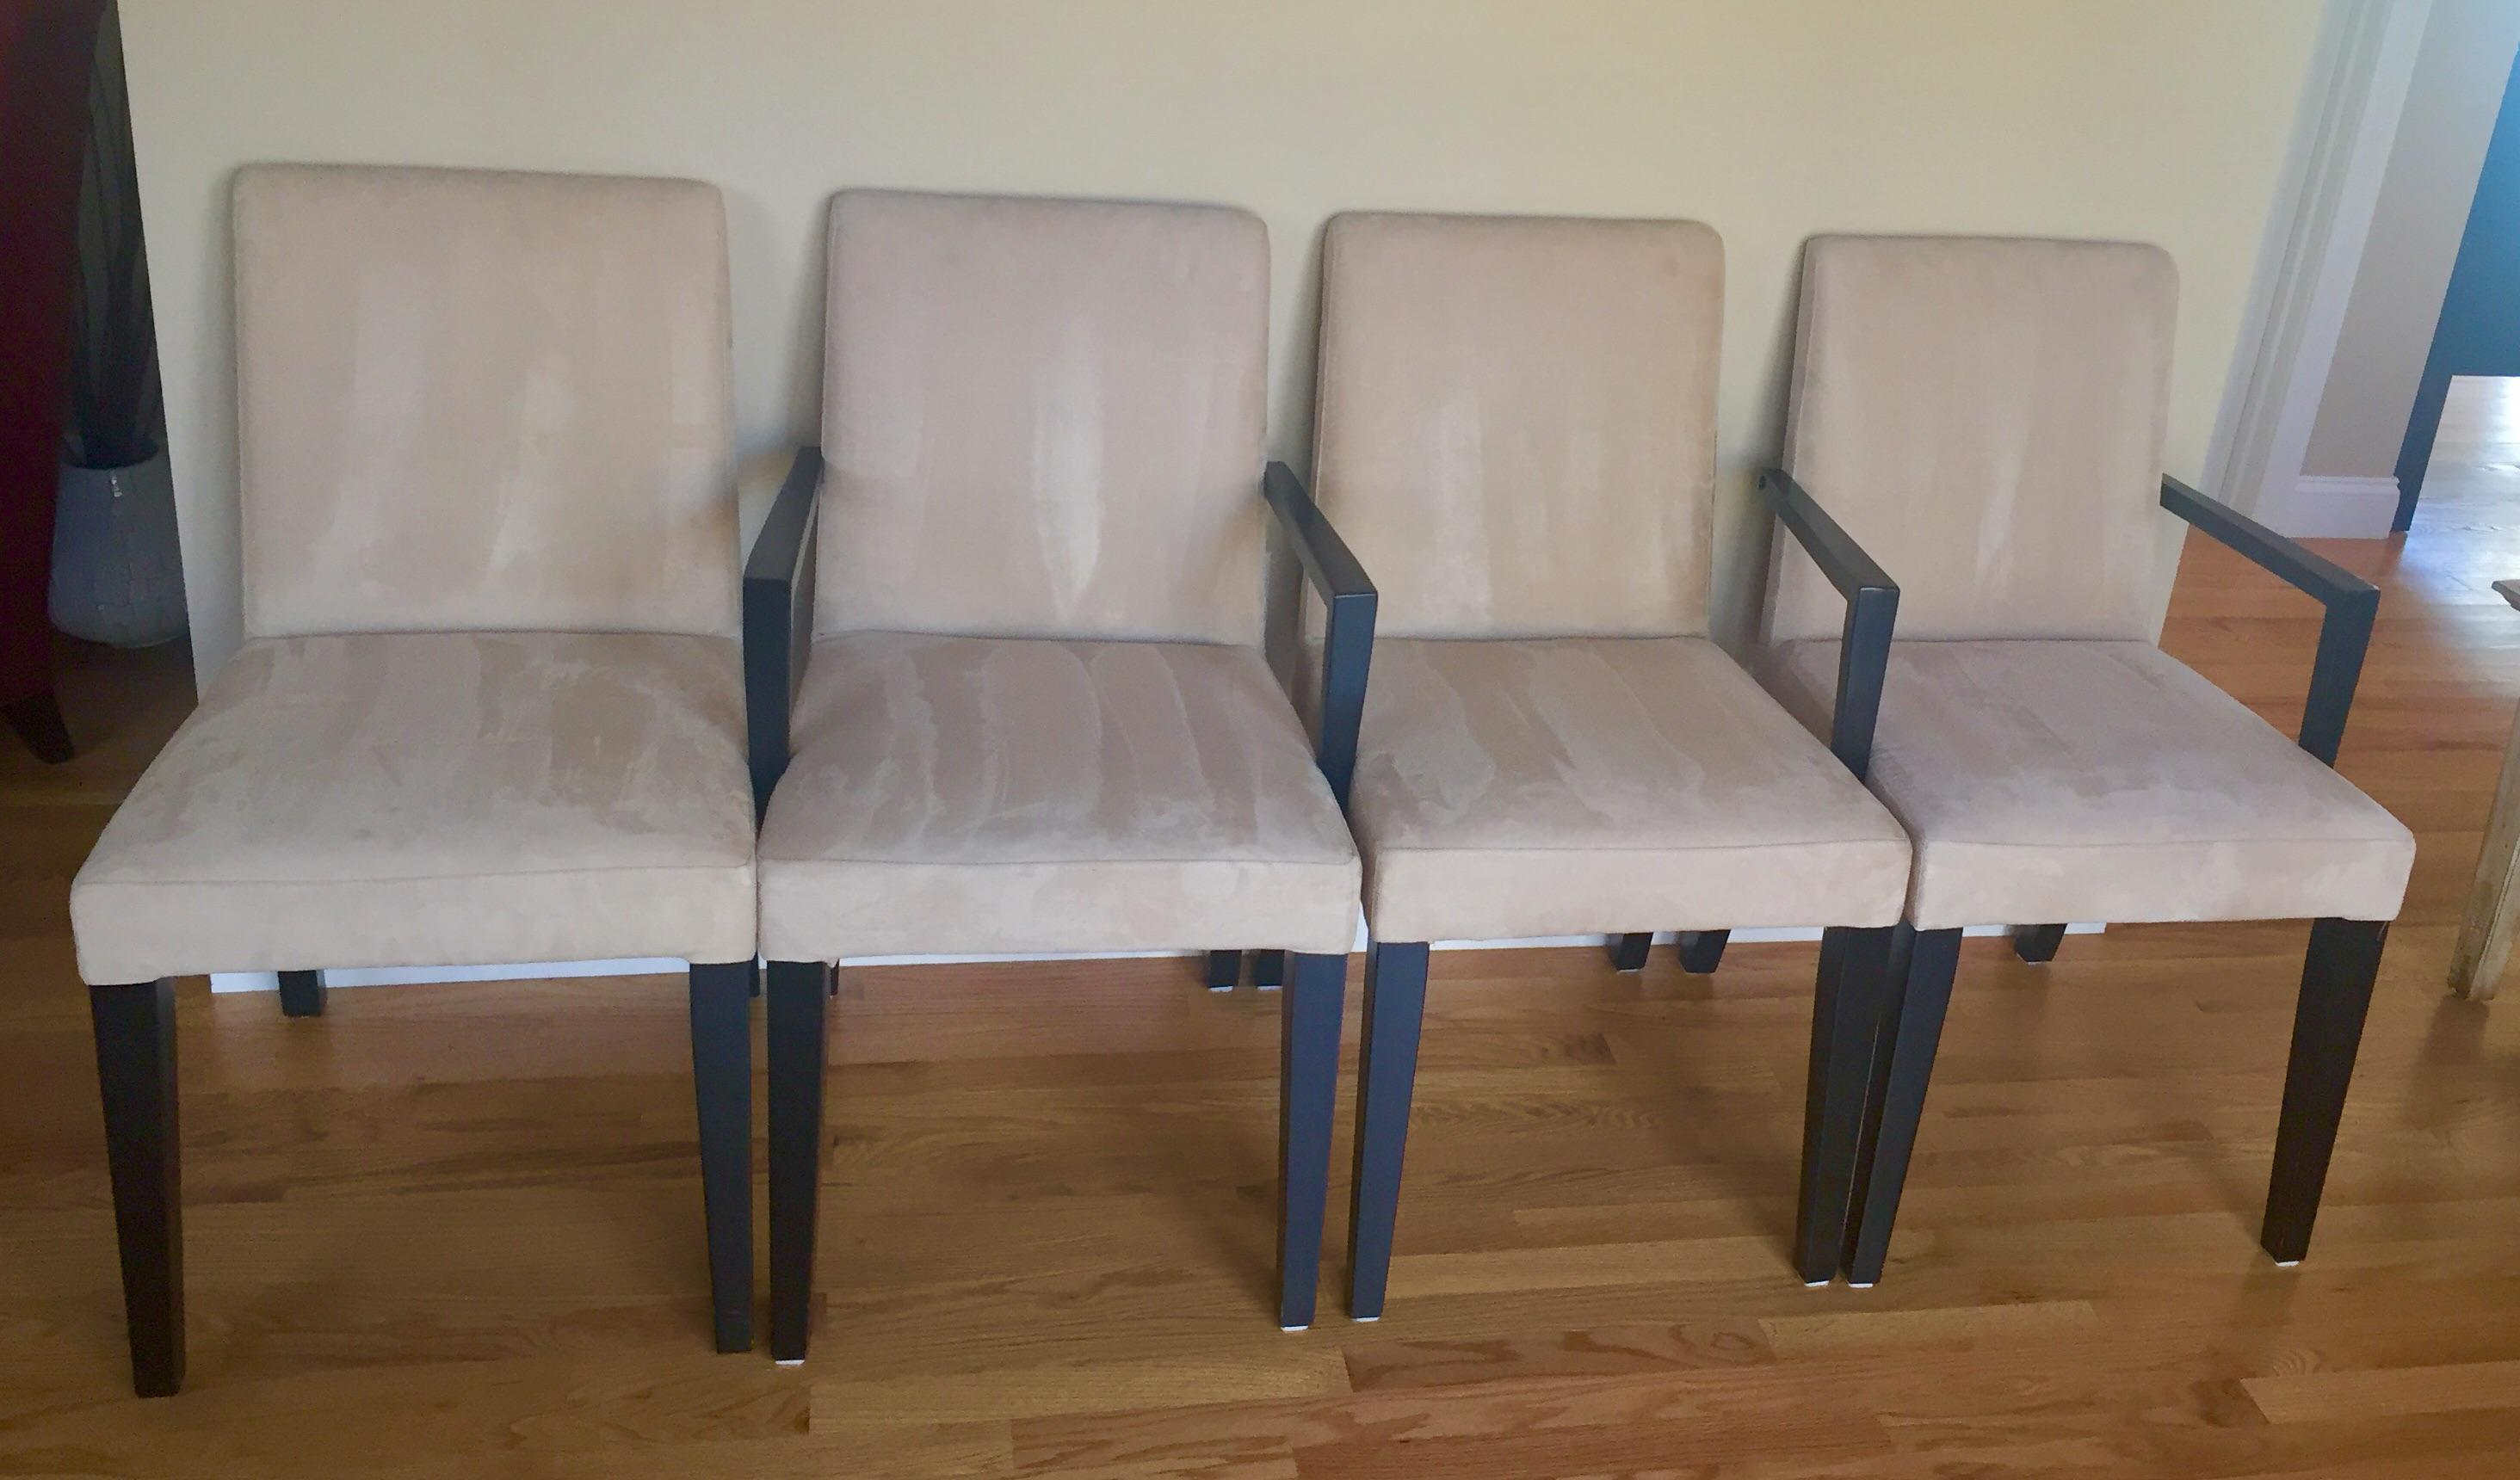 Contemporary Bo Concept Ultrasuede Parson Dining Chairs   Set Of 4 For Sale    Image 3